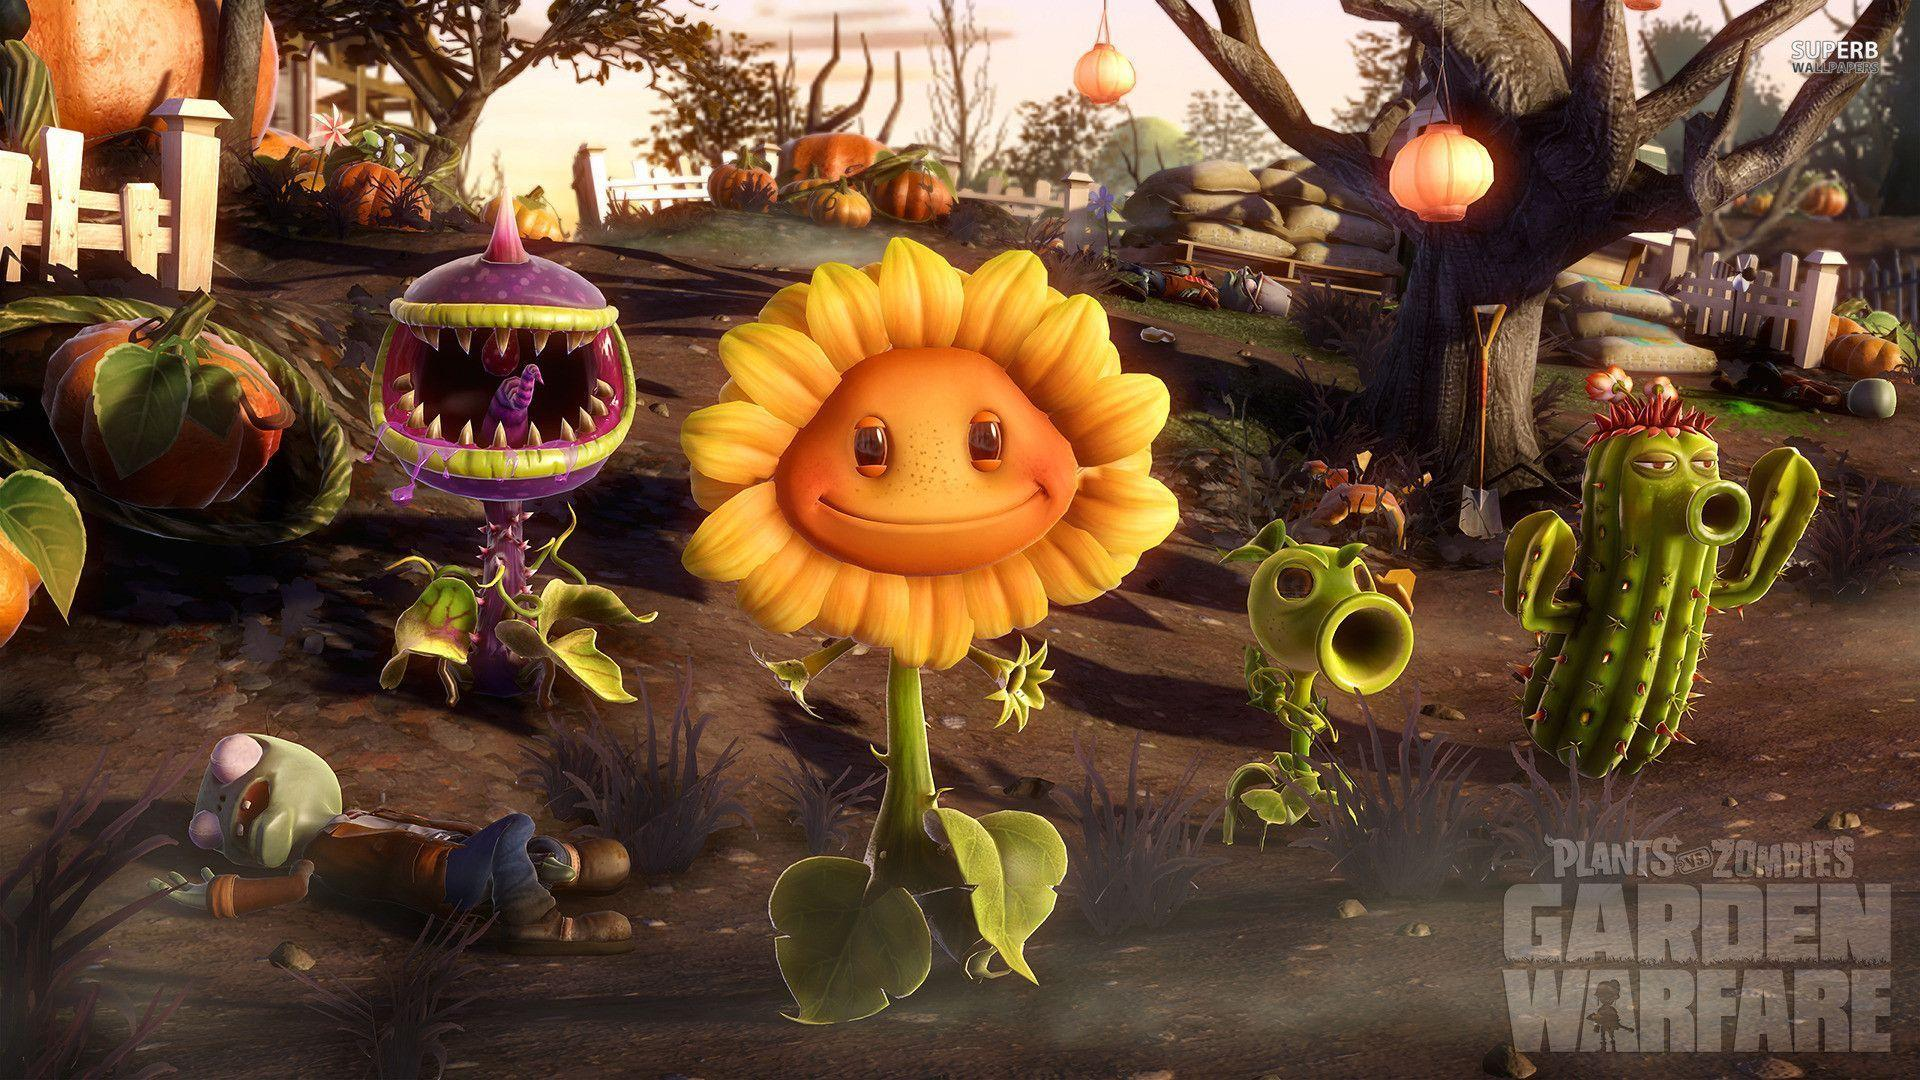 Plants Vs Zombies Wallpapers - Full HD wallpaper search